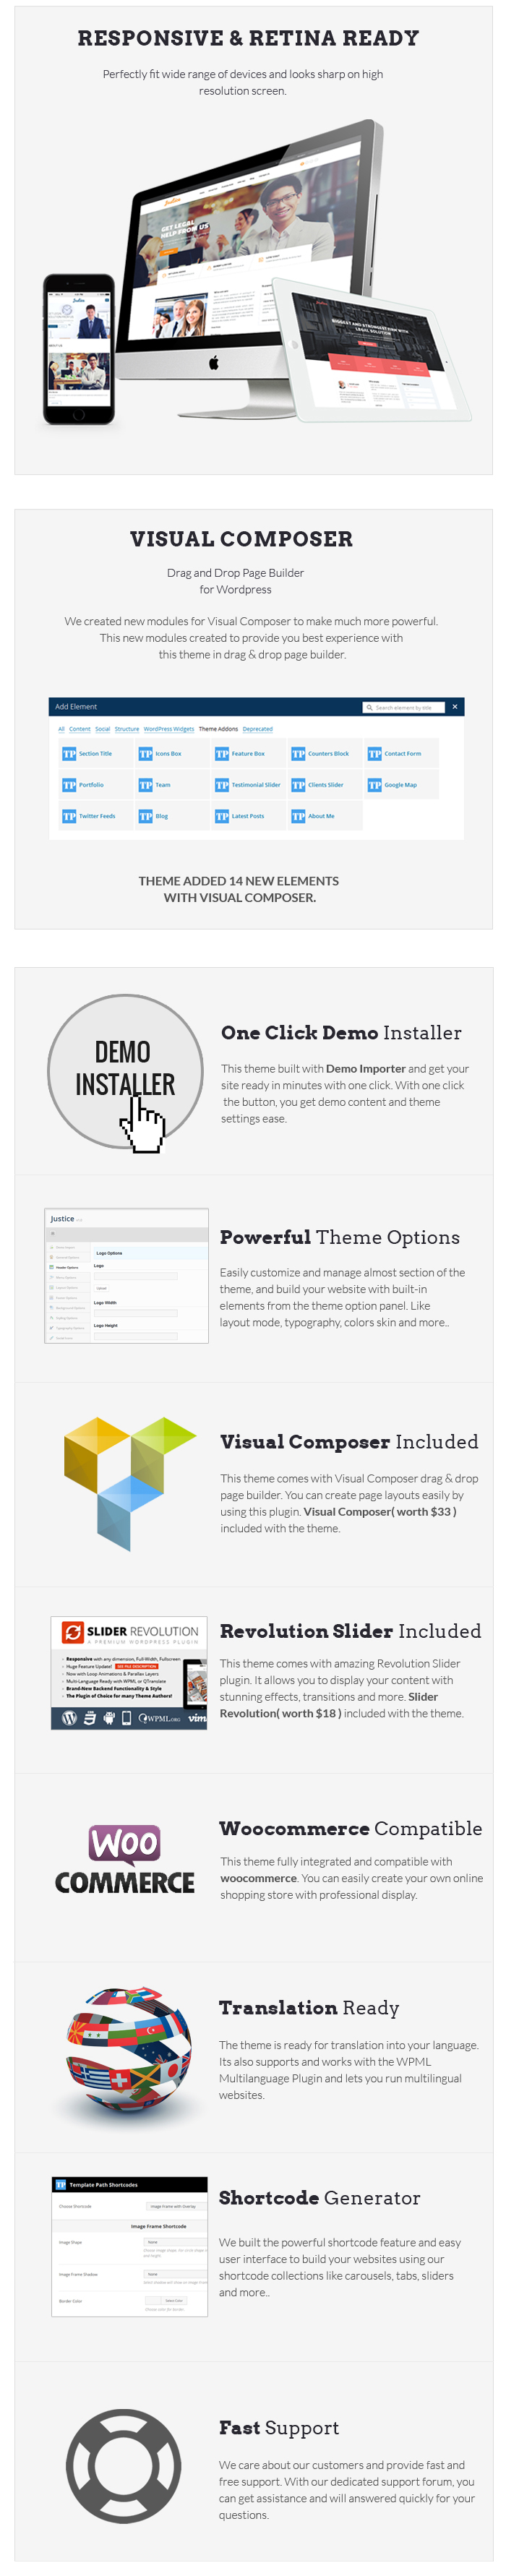 JUSTICE - Law & Business WordPress Theme - 1